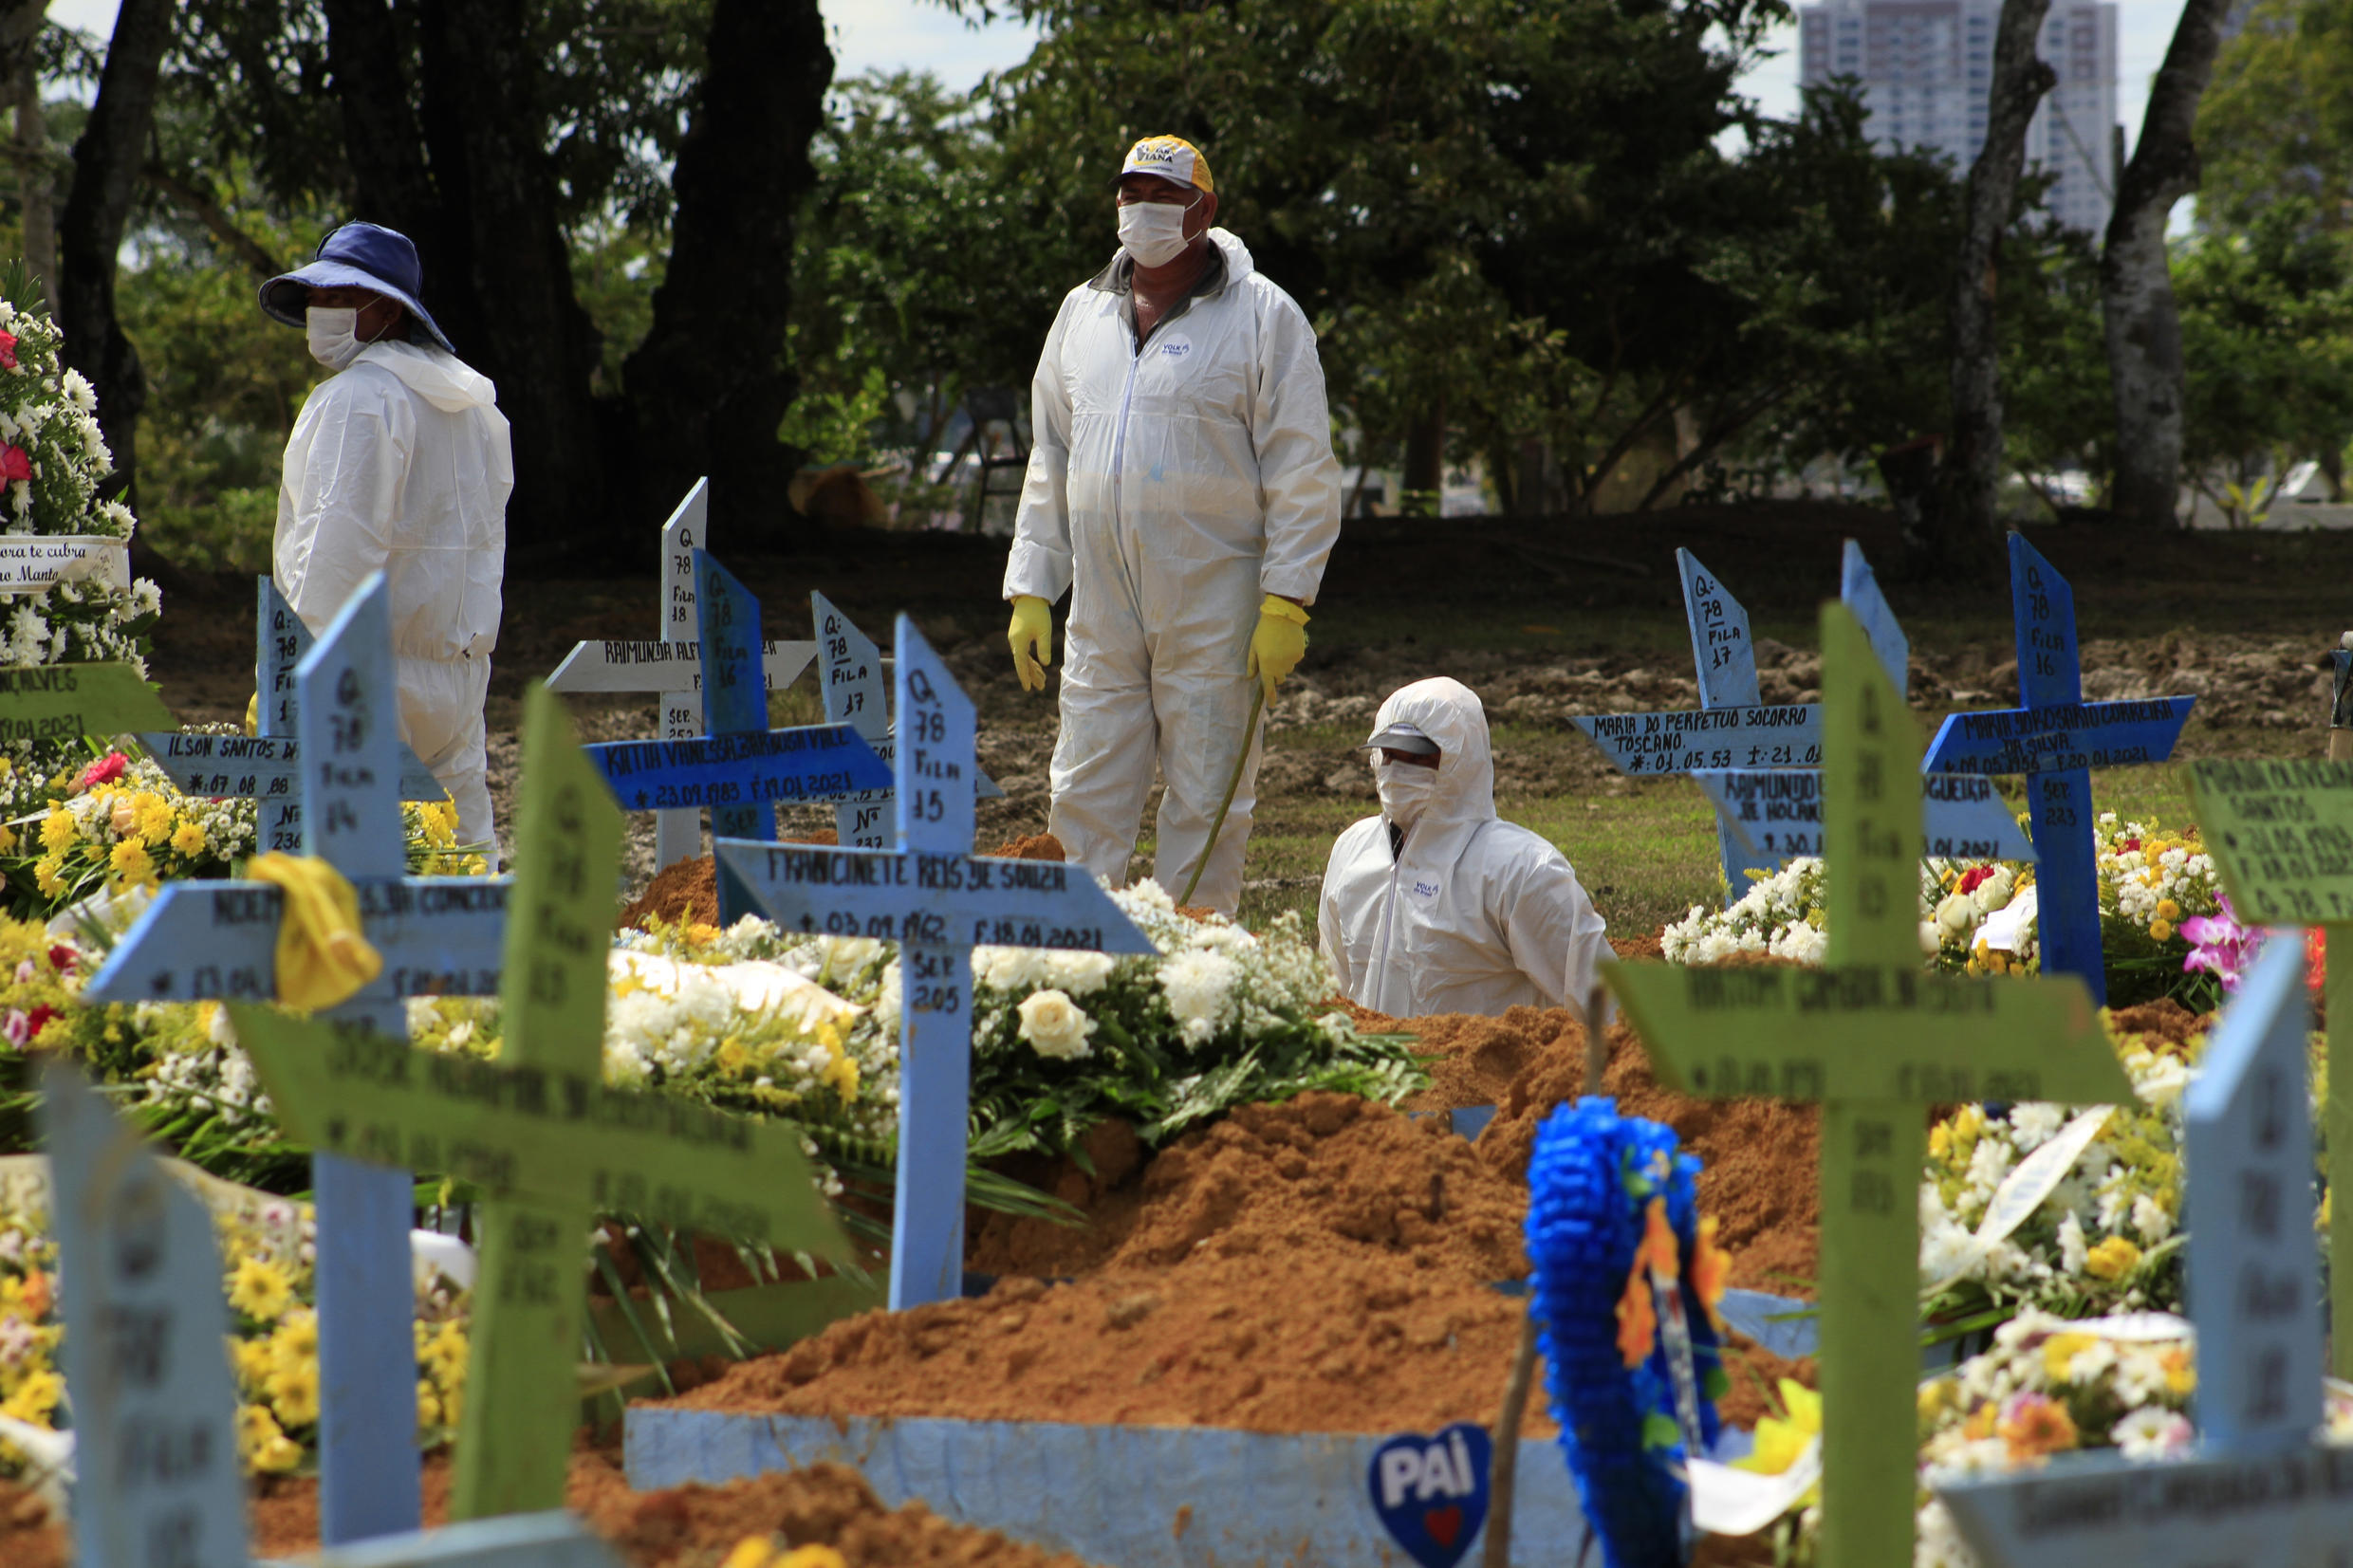 Gravediggers are seen during the funeral of a COVID-19 victim at the Nossa Senhora Aparecida cemetery in Manaus, Amazonas state, Brazil, on January 22, 2021, amid the new coronavirus pandemic.